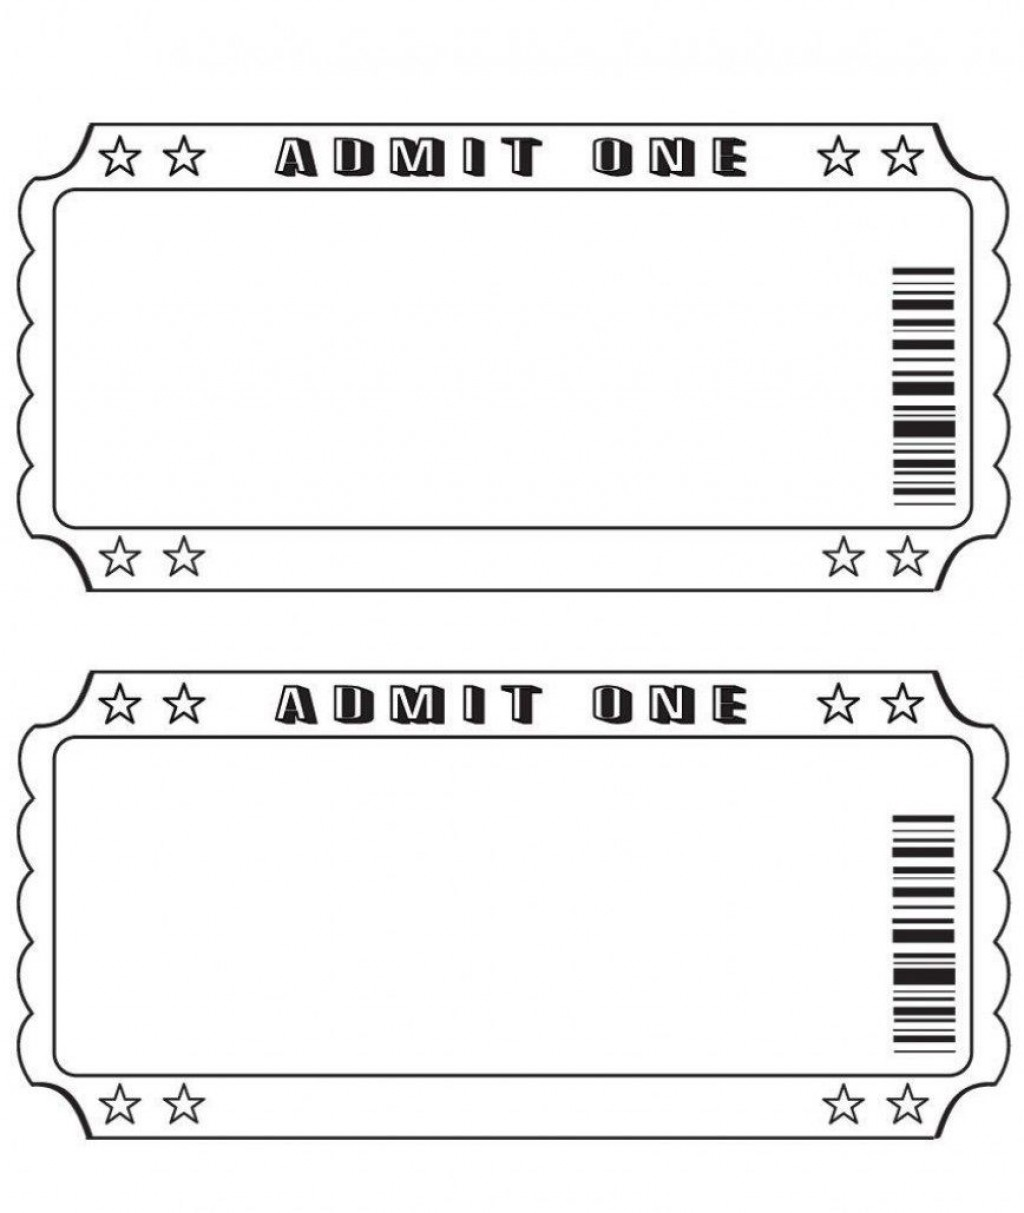 001 Unbelievable Editable Ticket Template Free Highest Clarity  Concert Word Irctc Format Download MovieLarge